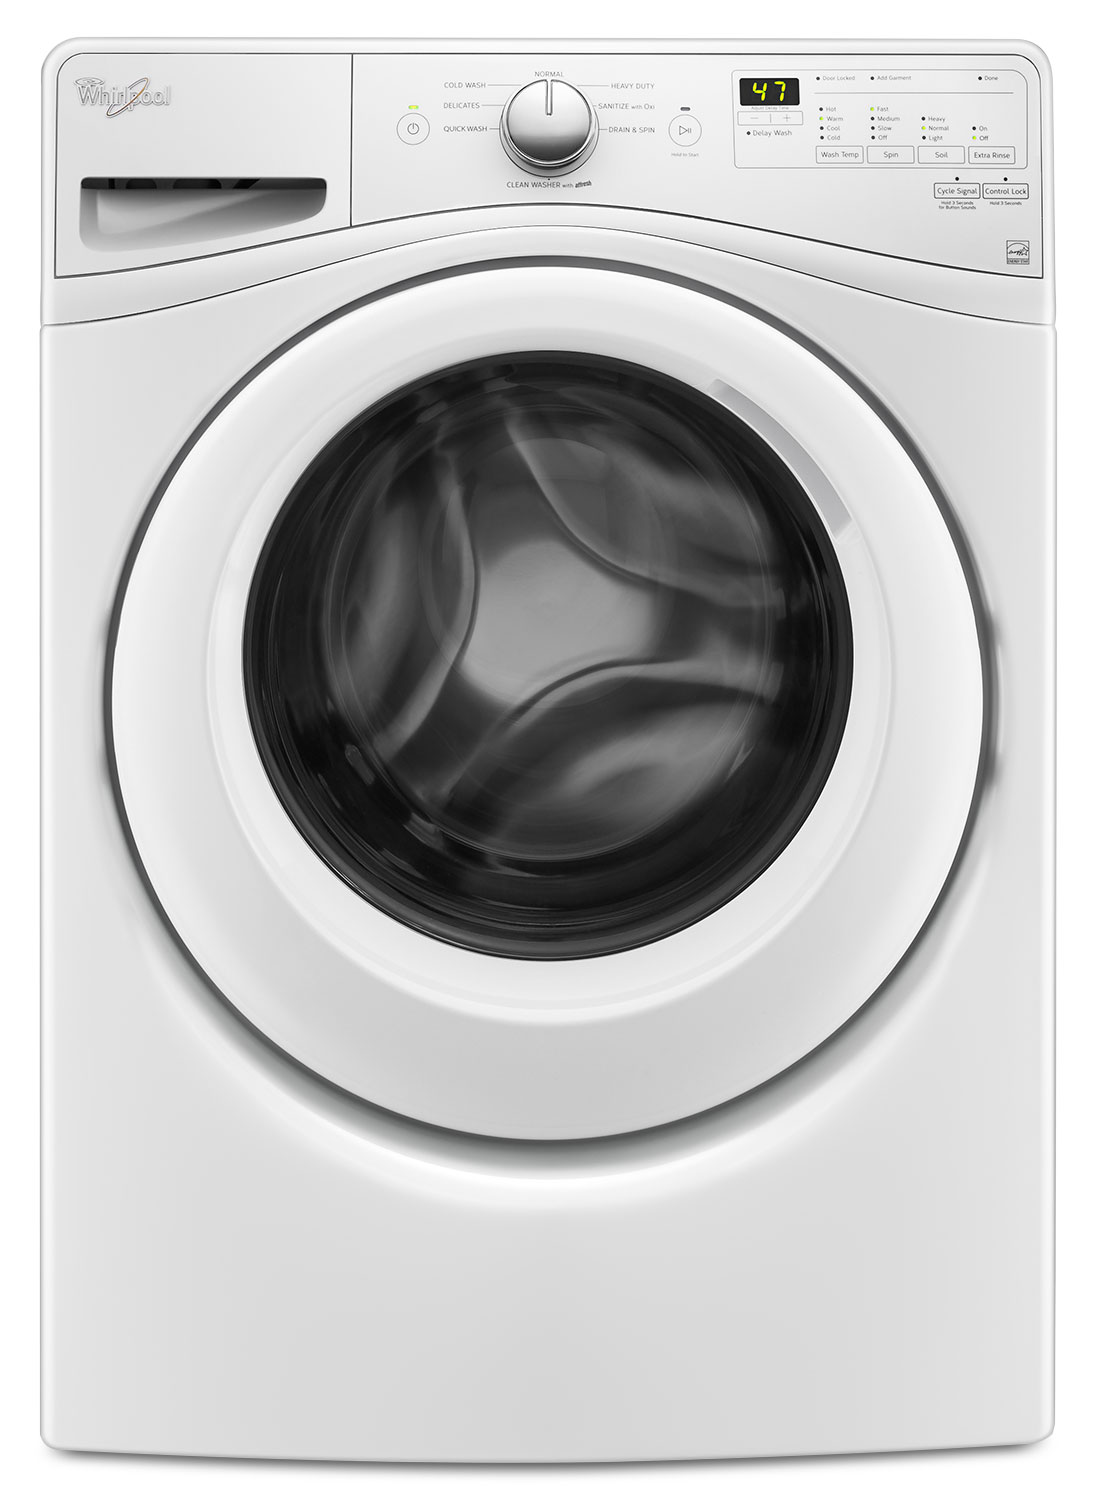 Washers and Dryers - Whirlpool White Front-Load Washer (4.8 Cu. Ft. IEC) - WFW7590FW